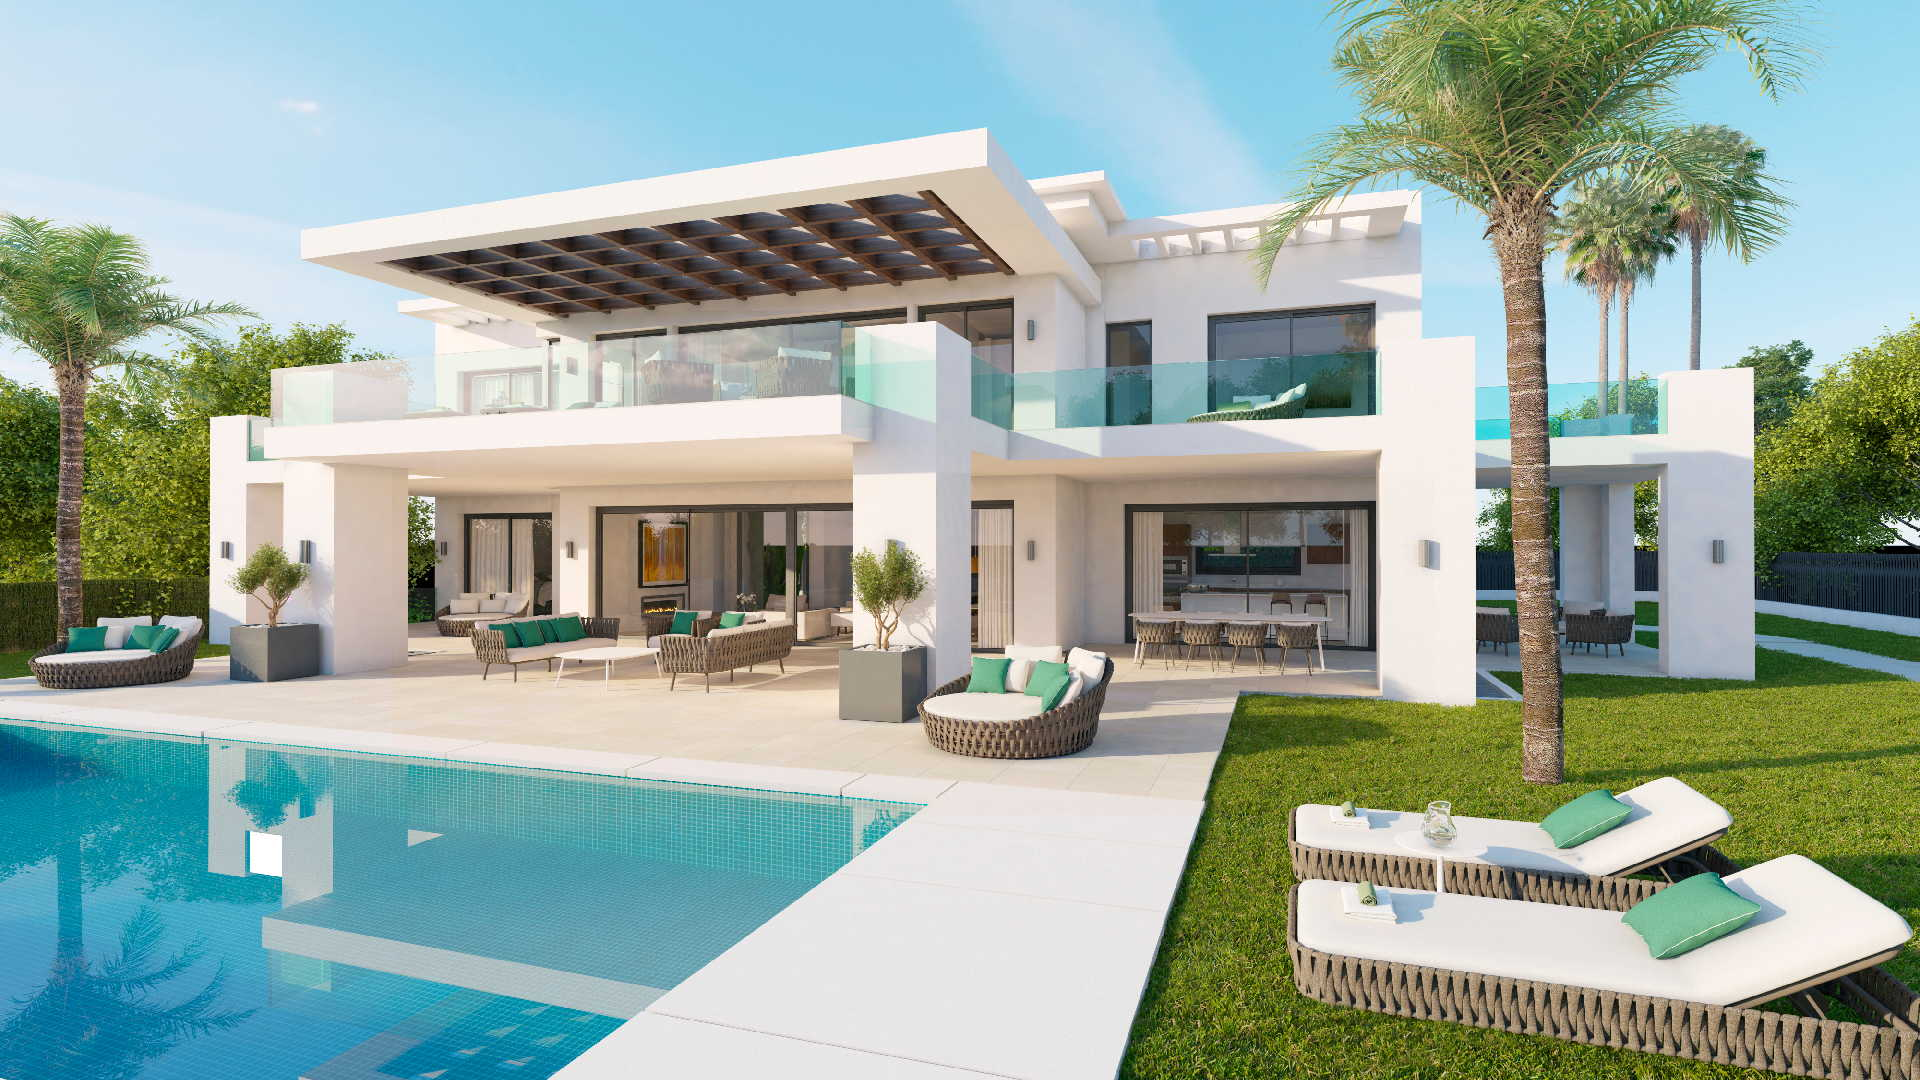 New villa in los olivos nueva andalucia marbella for sale for Contemporary villa plans